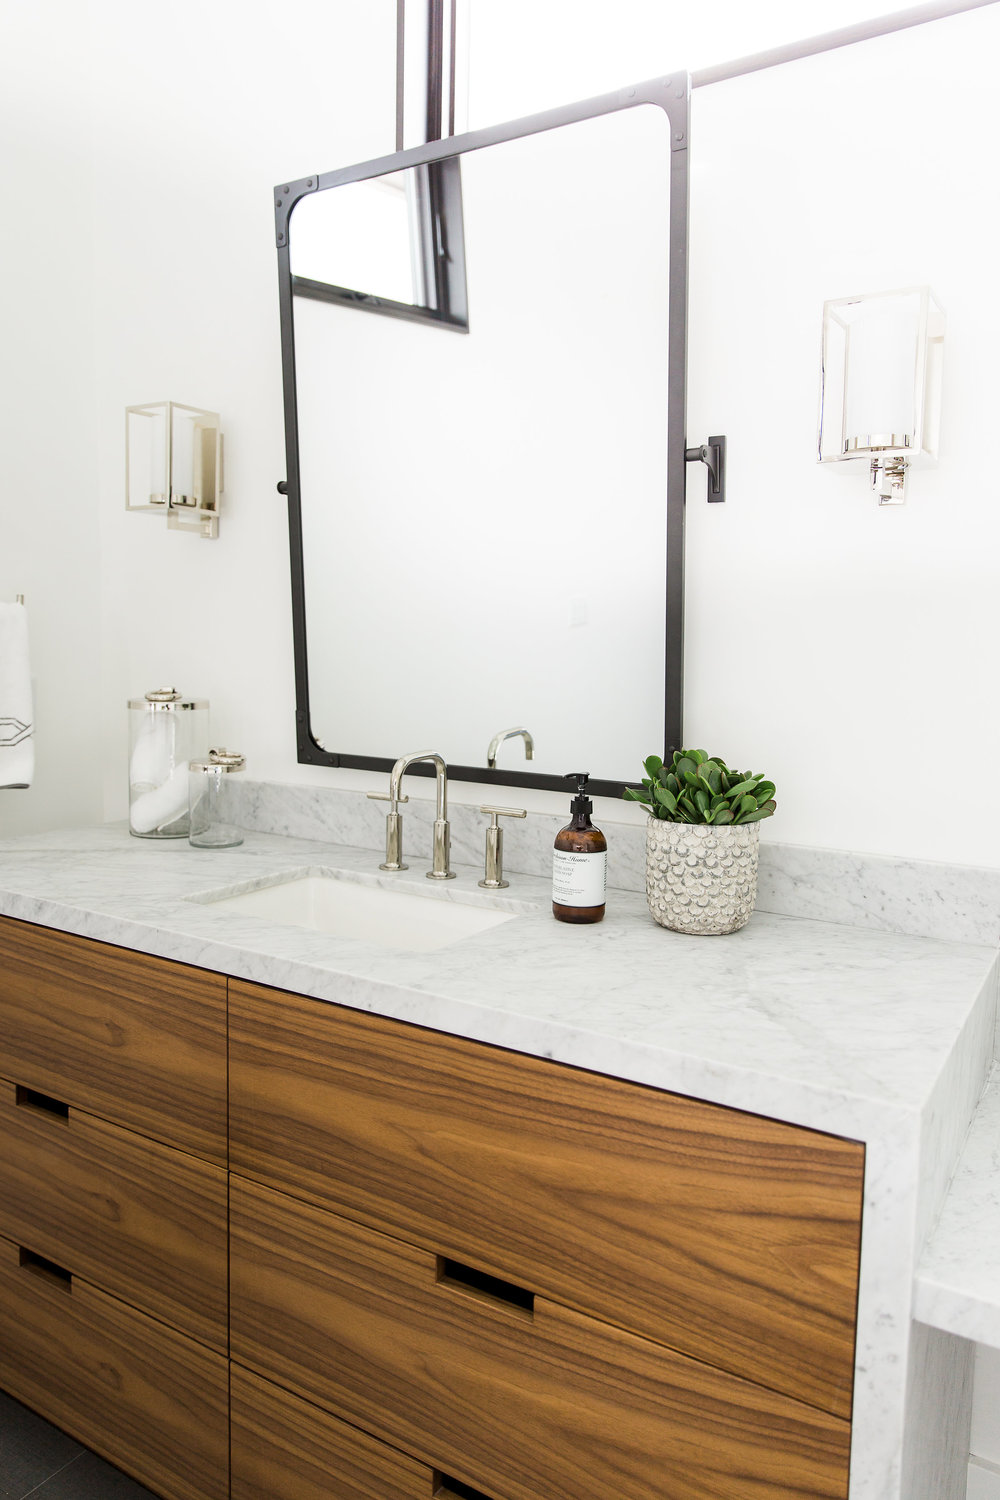 Waterfall edge on bathroom vanity || Studio McGee